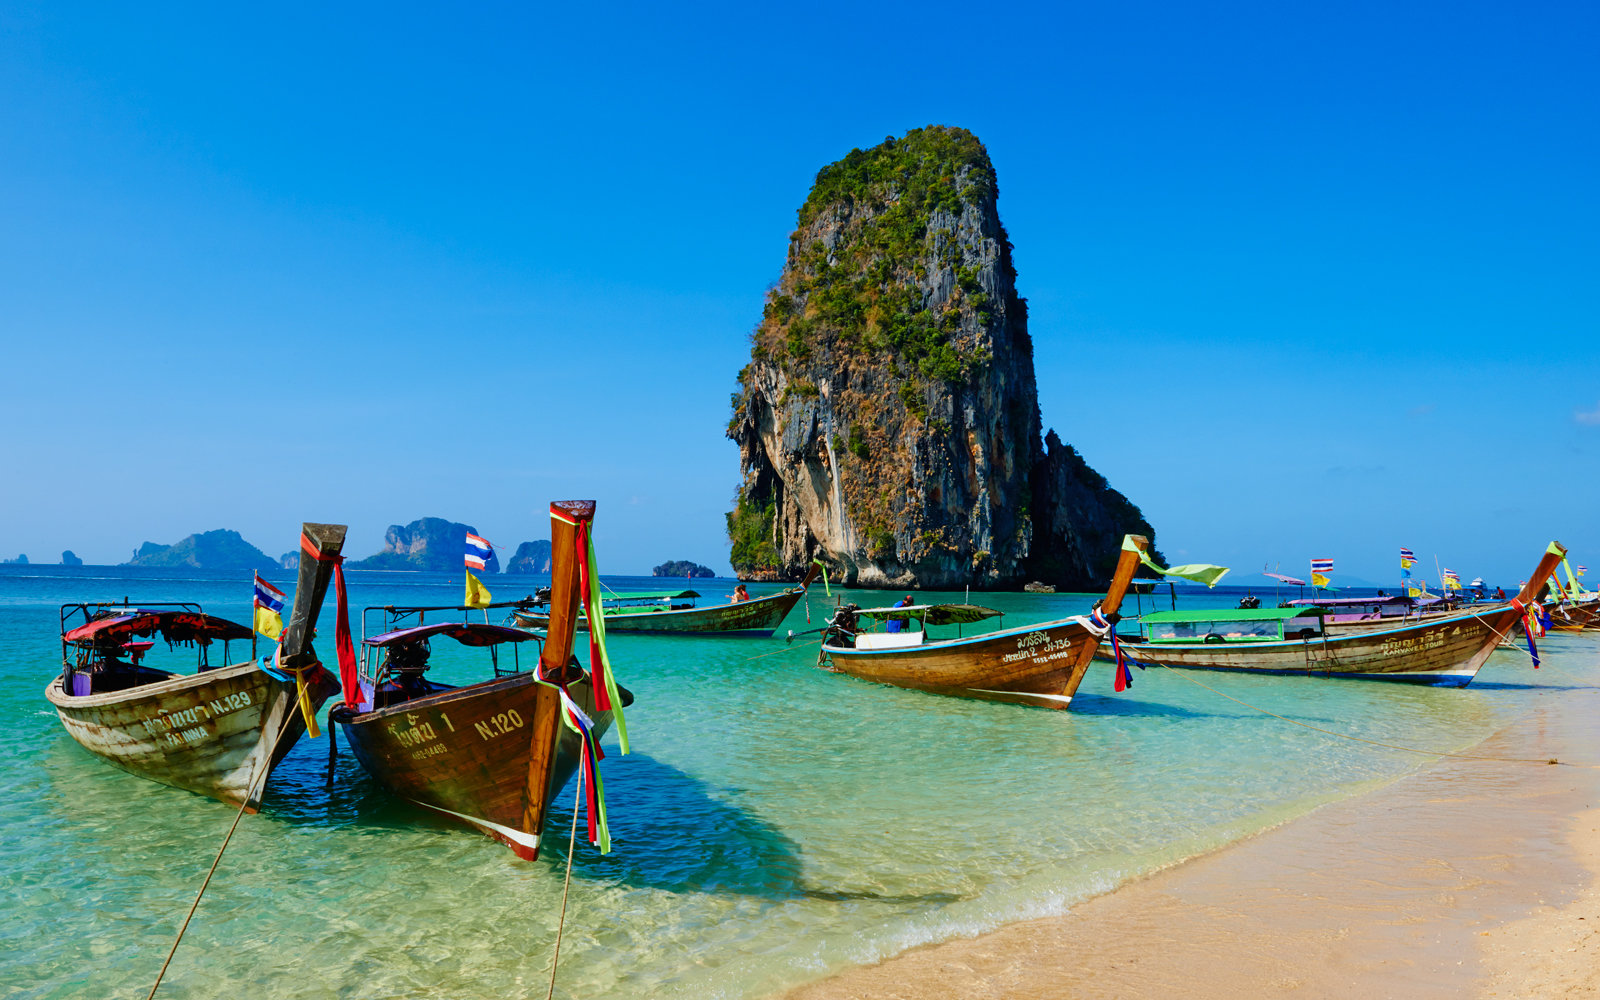 You can buy elite residency in Thailand for $60,000